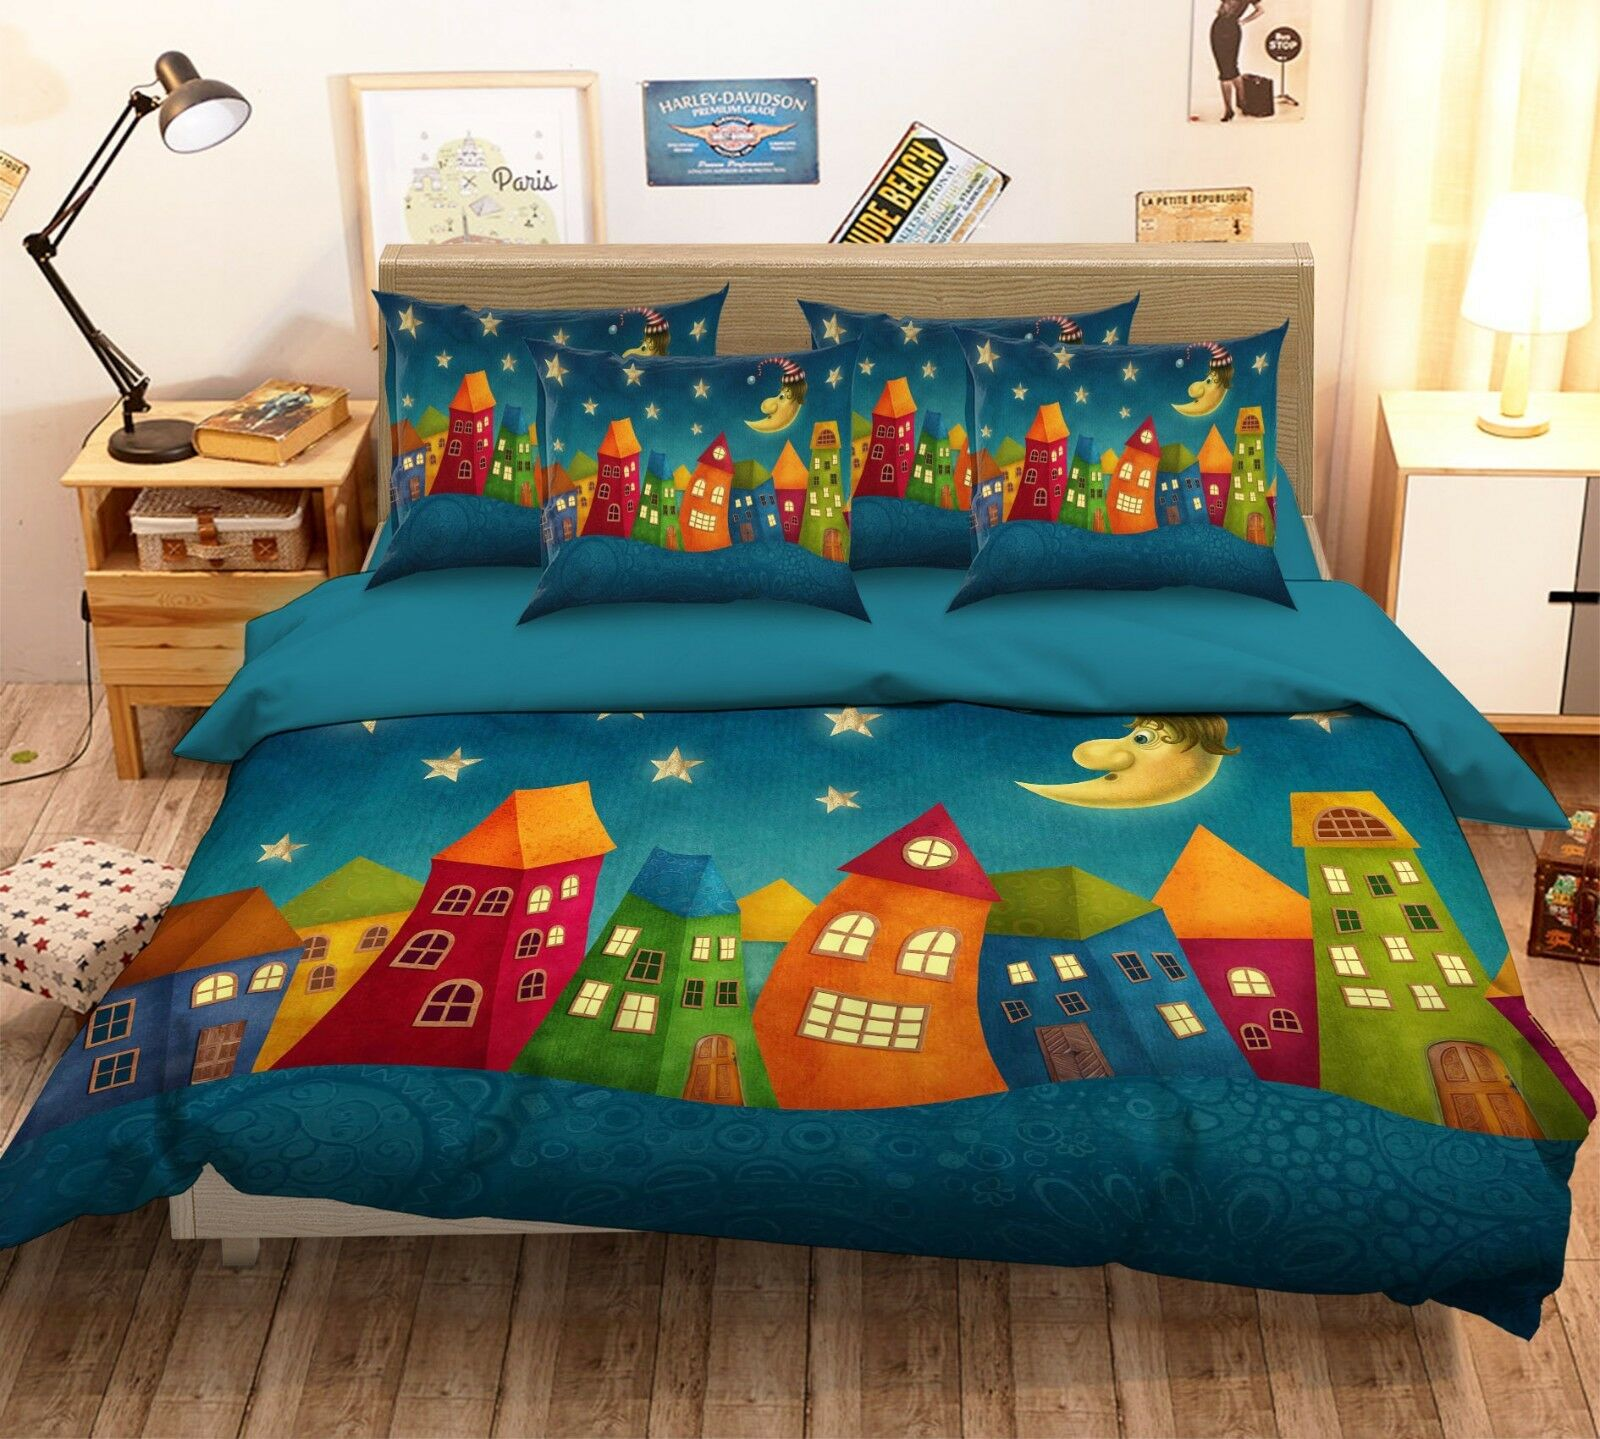 3D Cartoon House 53 Bed Pillowcases Quilt Duvet Cover Set Single Queen King AU